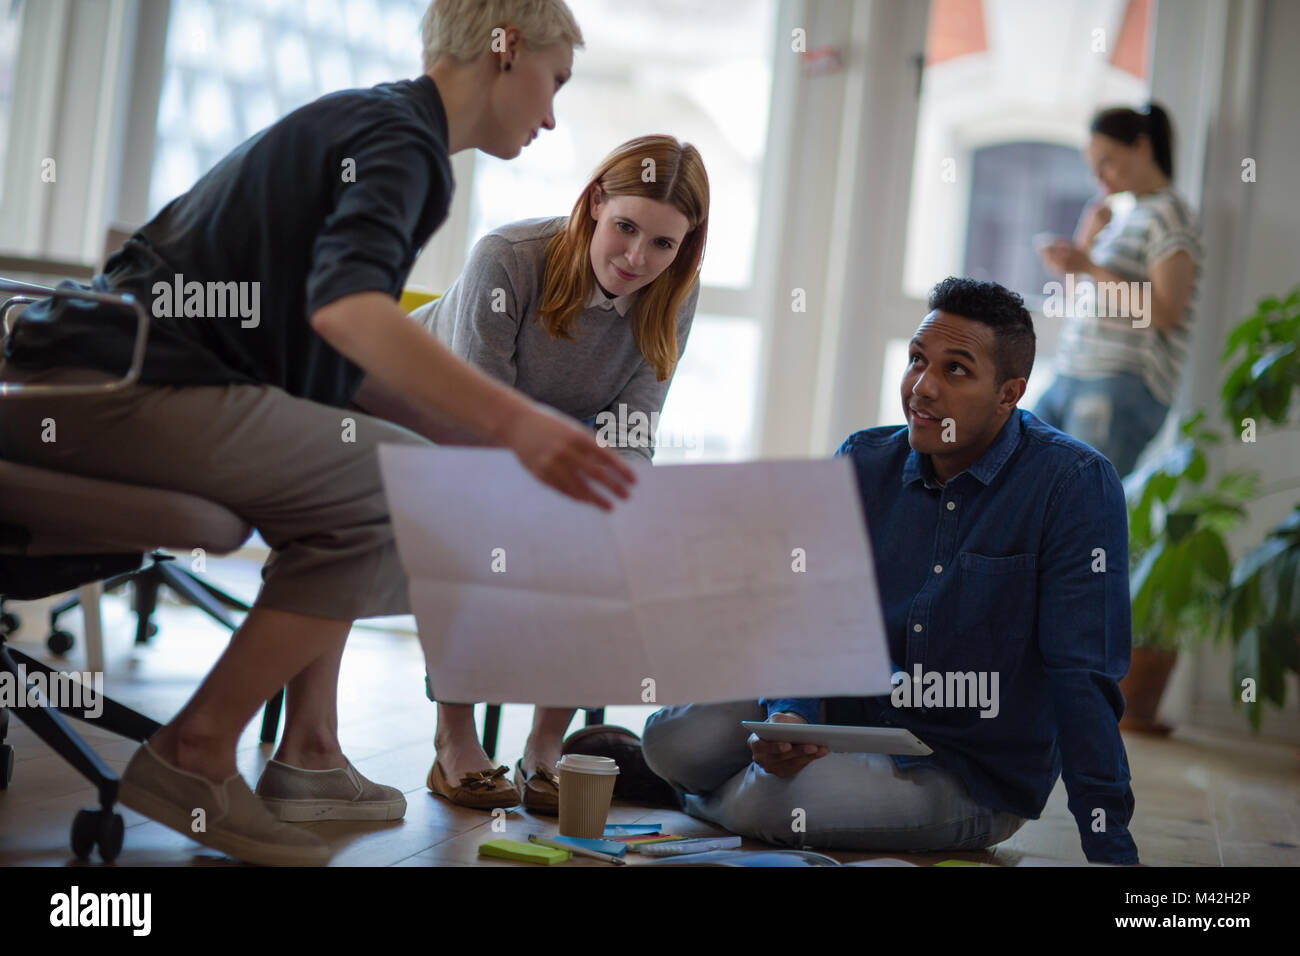 Colleagues looking at plans together in a meeting - Stock Image